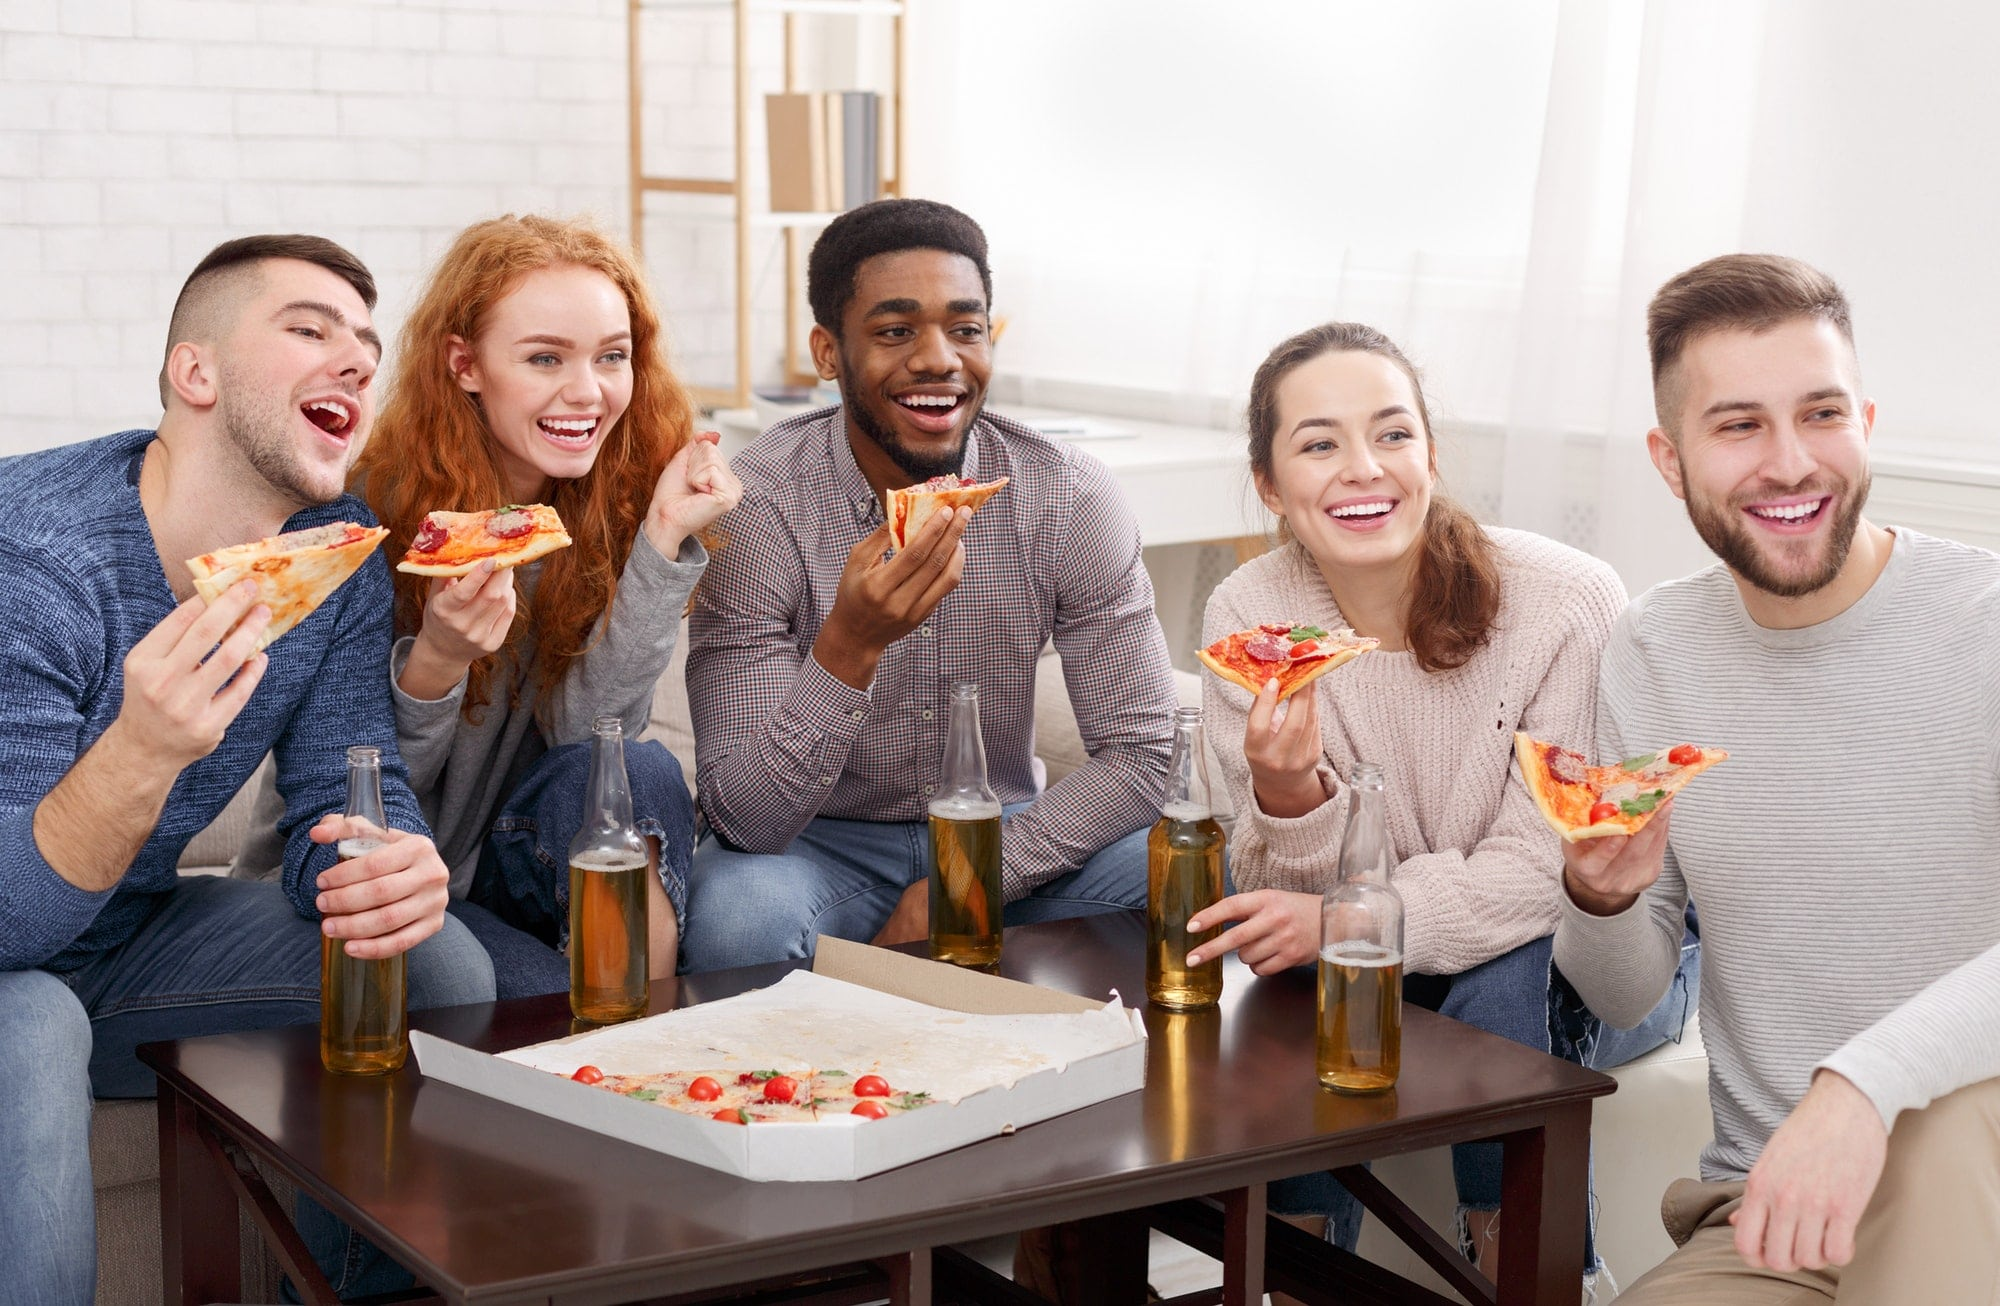 Friends eating pizza and watching comedy film